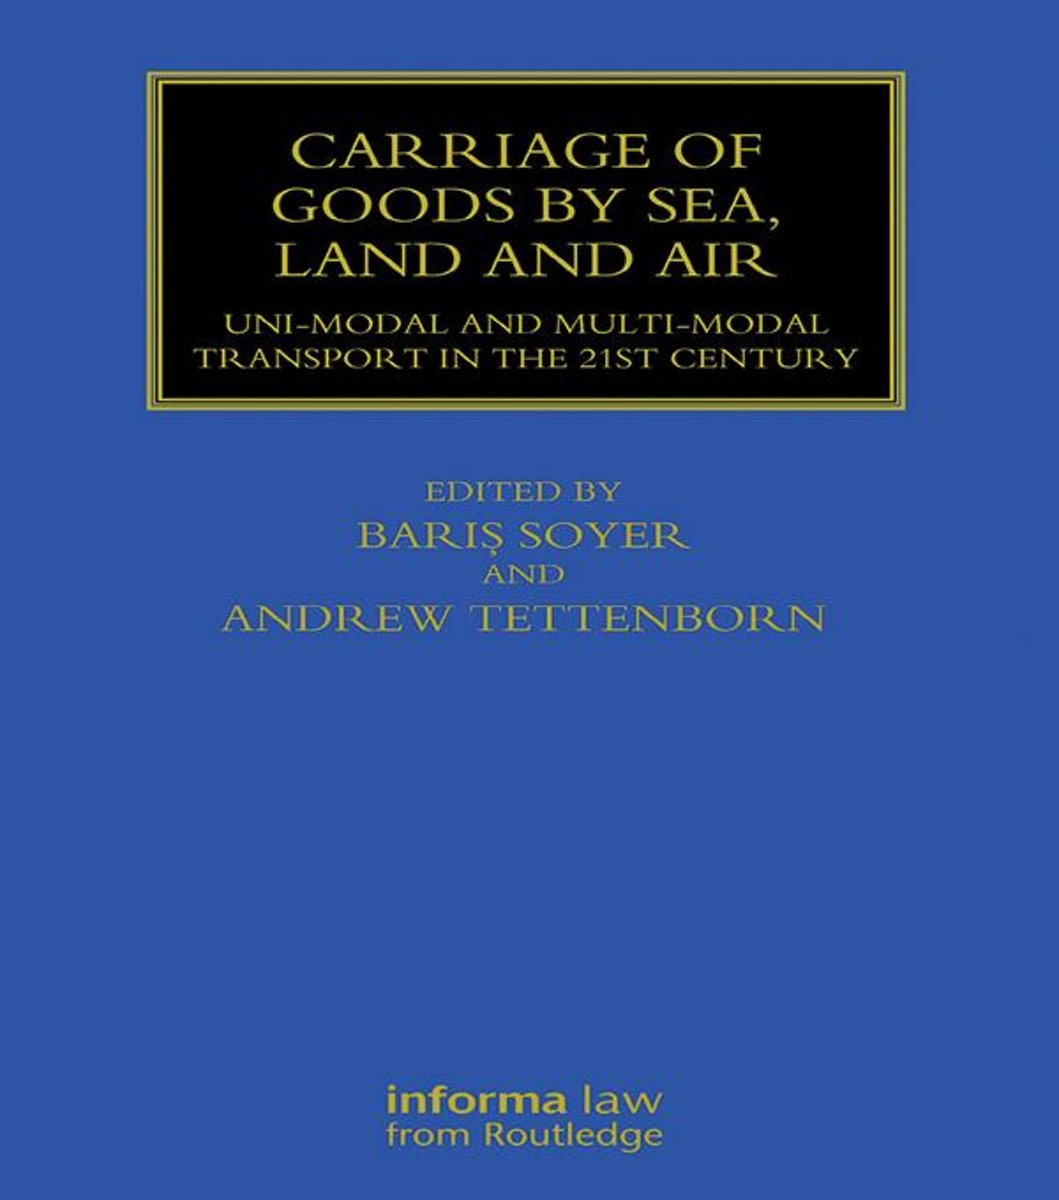 Carriage of Goods by Sea, Land and Air